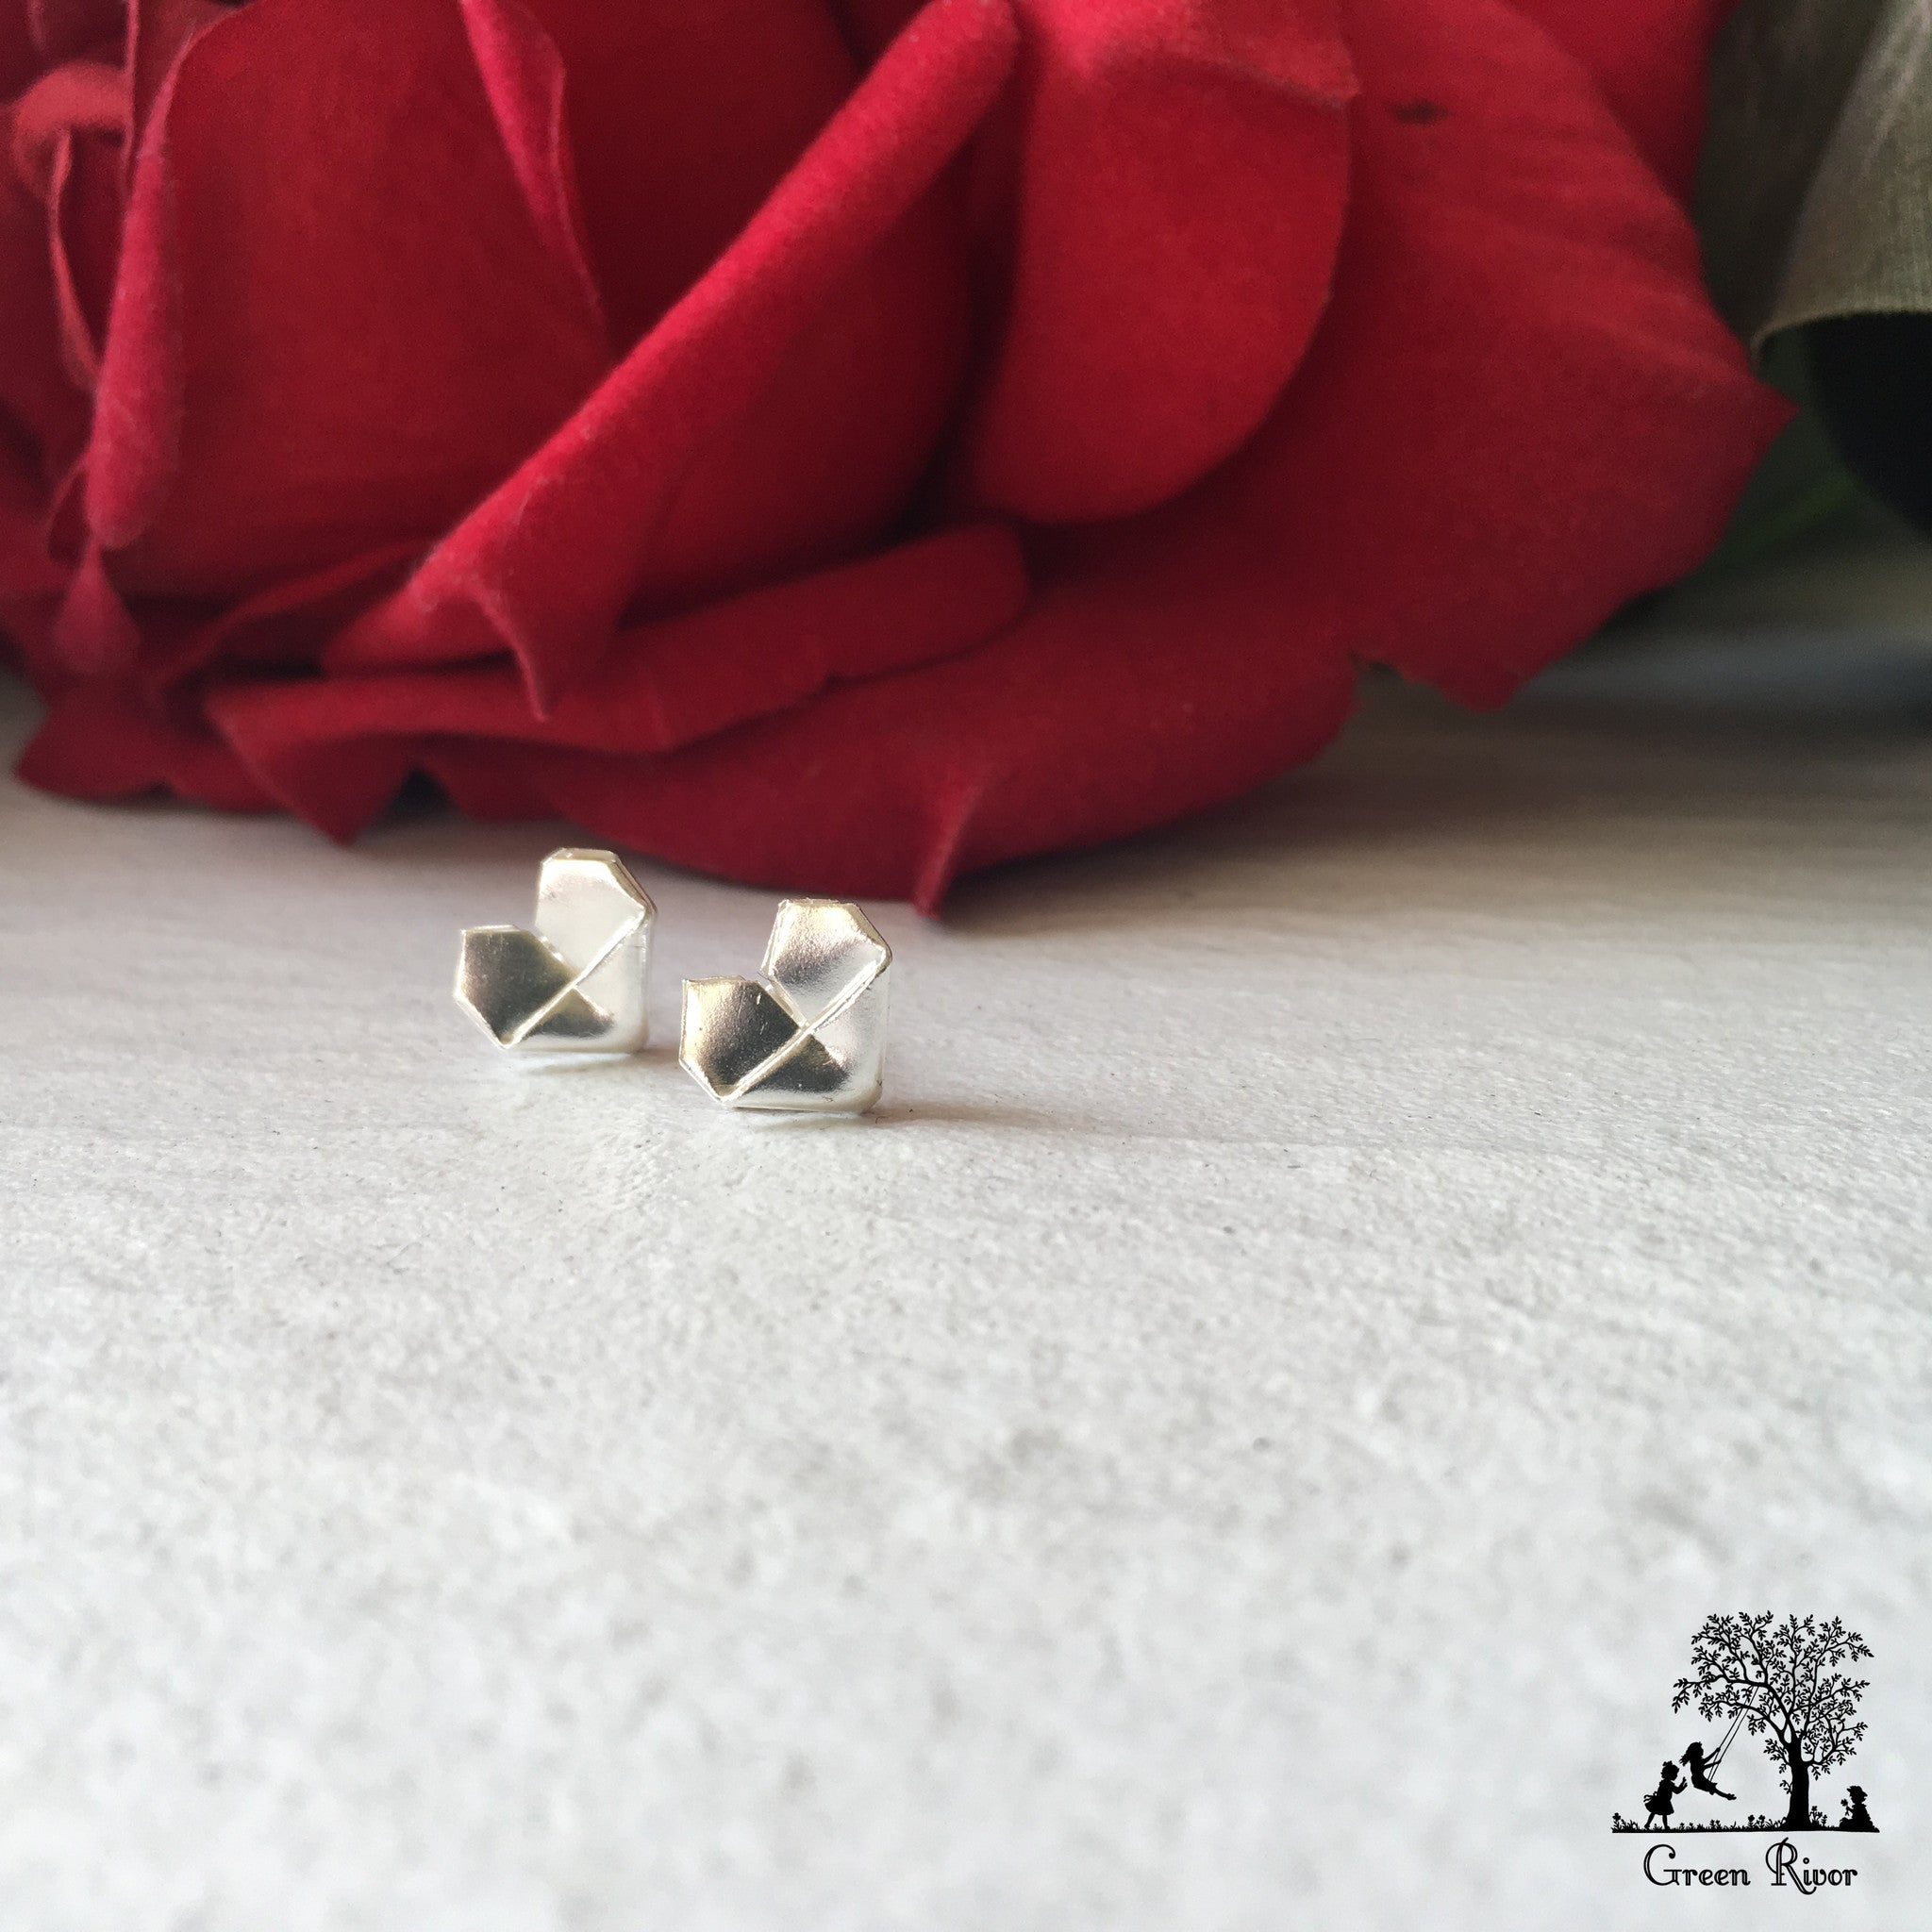 Silver Origami Heart Stud Earrings (Medium Size) / Sterling Silver Heart Earrings (Medium Size)